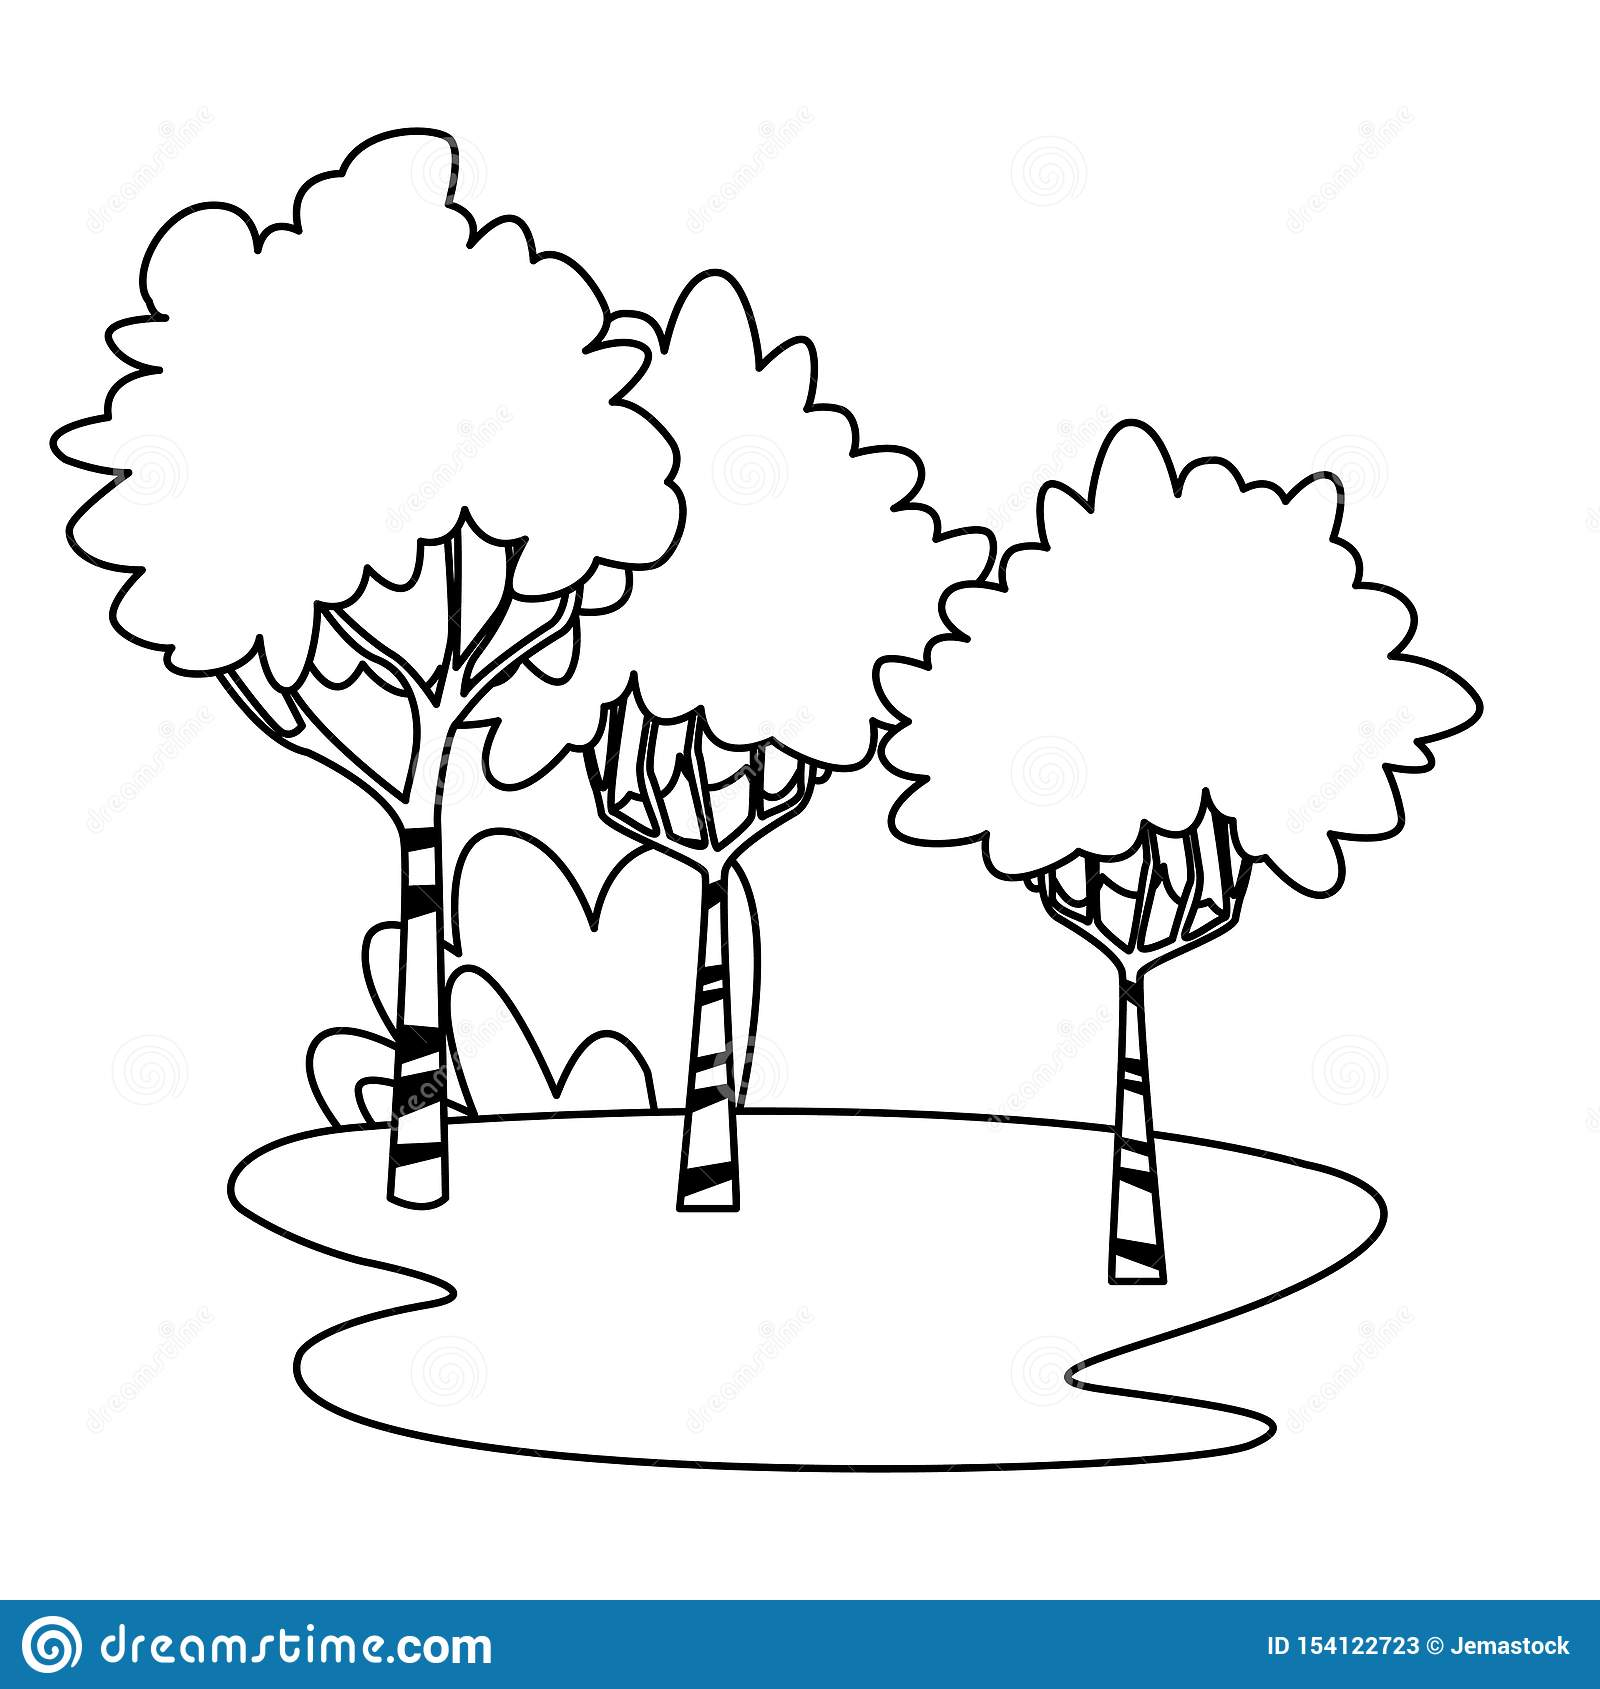 Park With Trees And Bushes Cartoon In Black And White Stock Vector Illustration Of Abstract Lush 154122723 Vector black tree isolated on white background. https www dreamstime com park trees bushes cartoon black white vector illustration graphic design image154122723